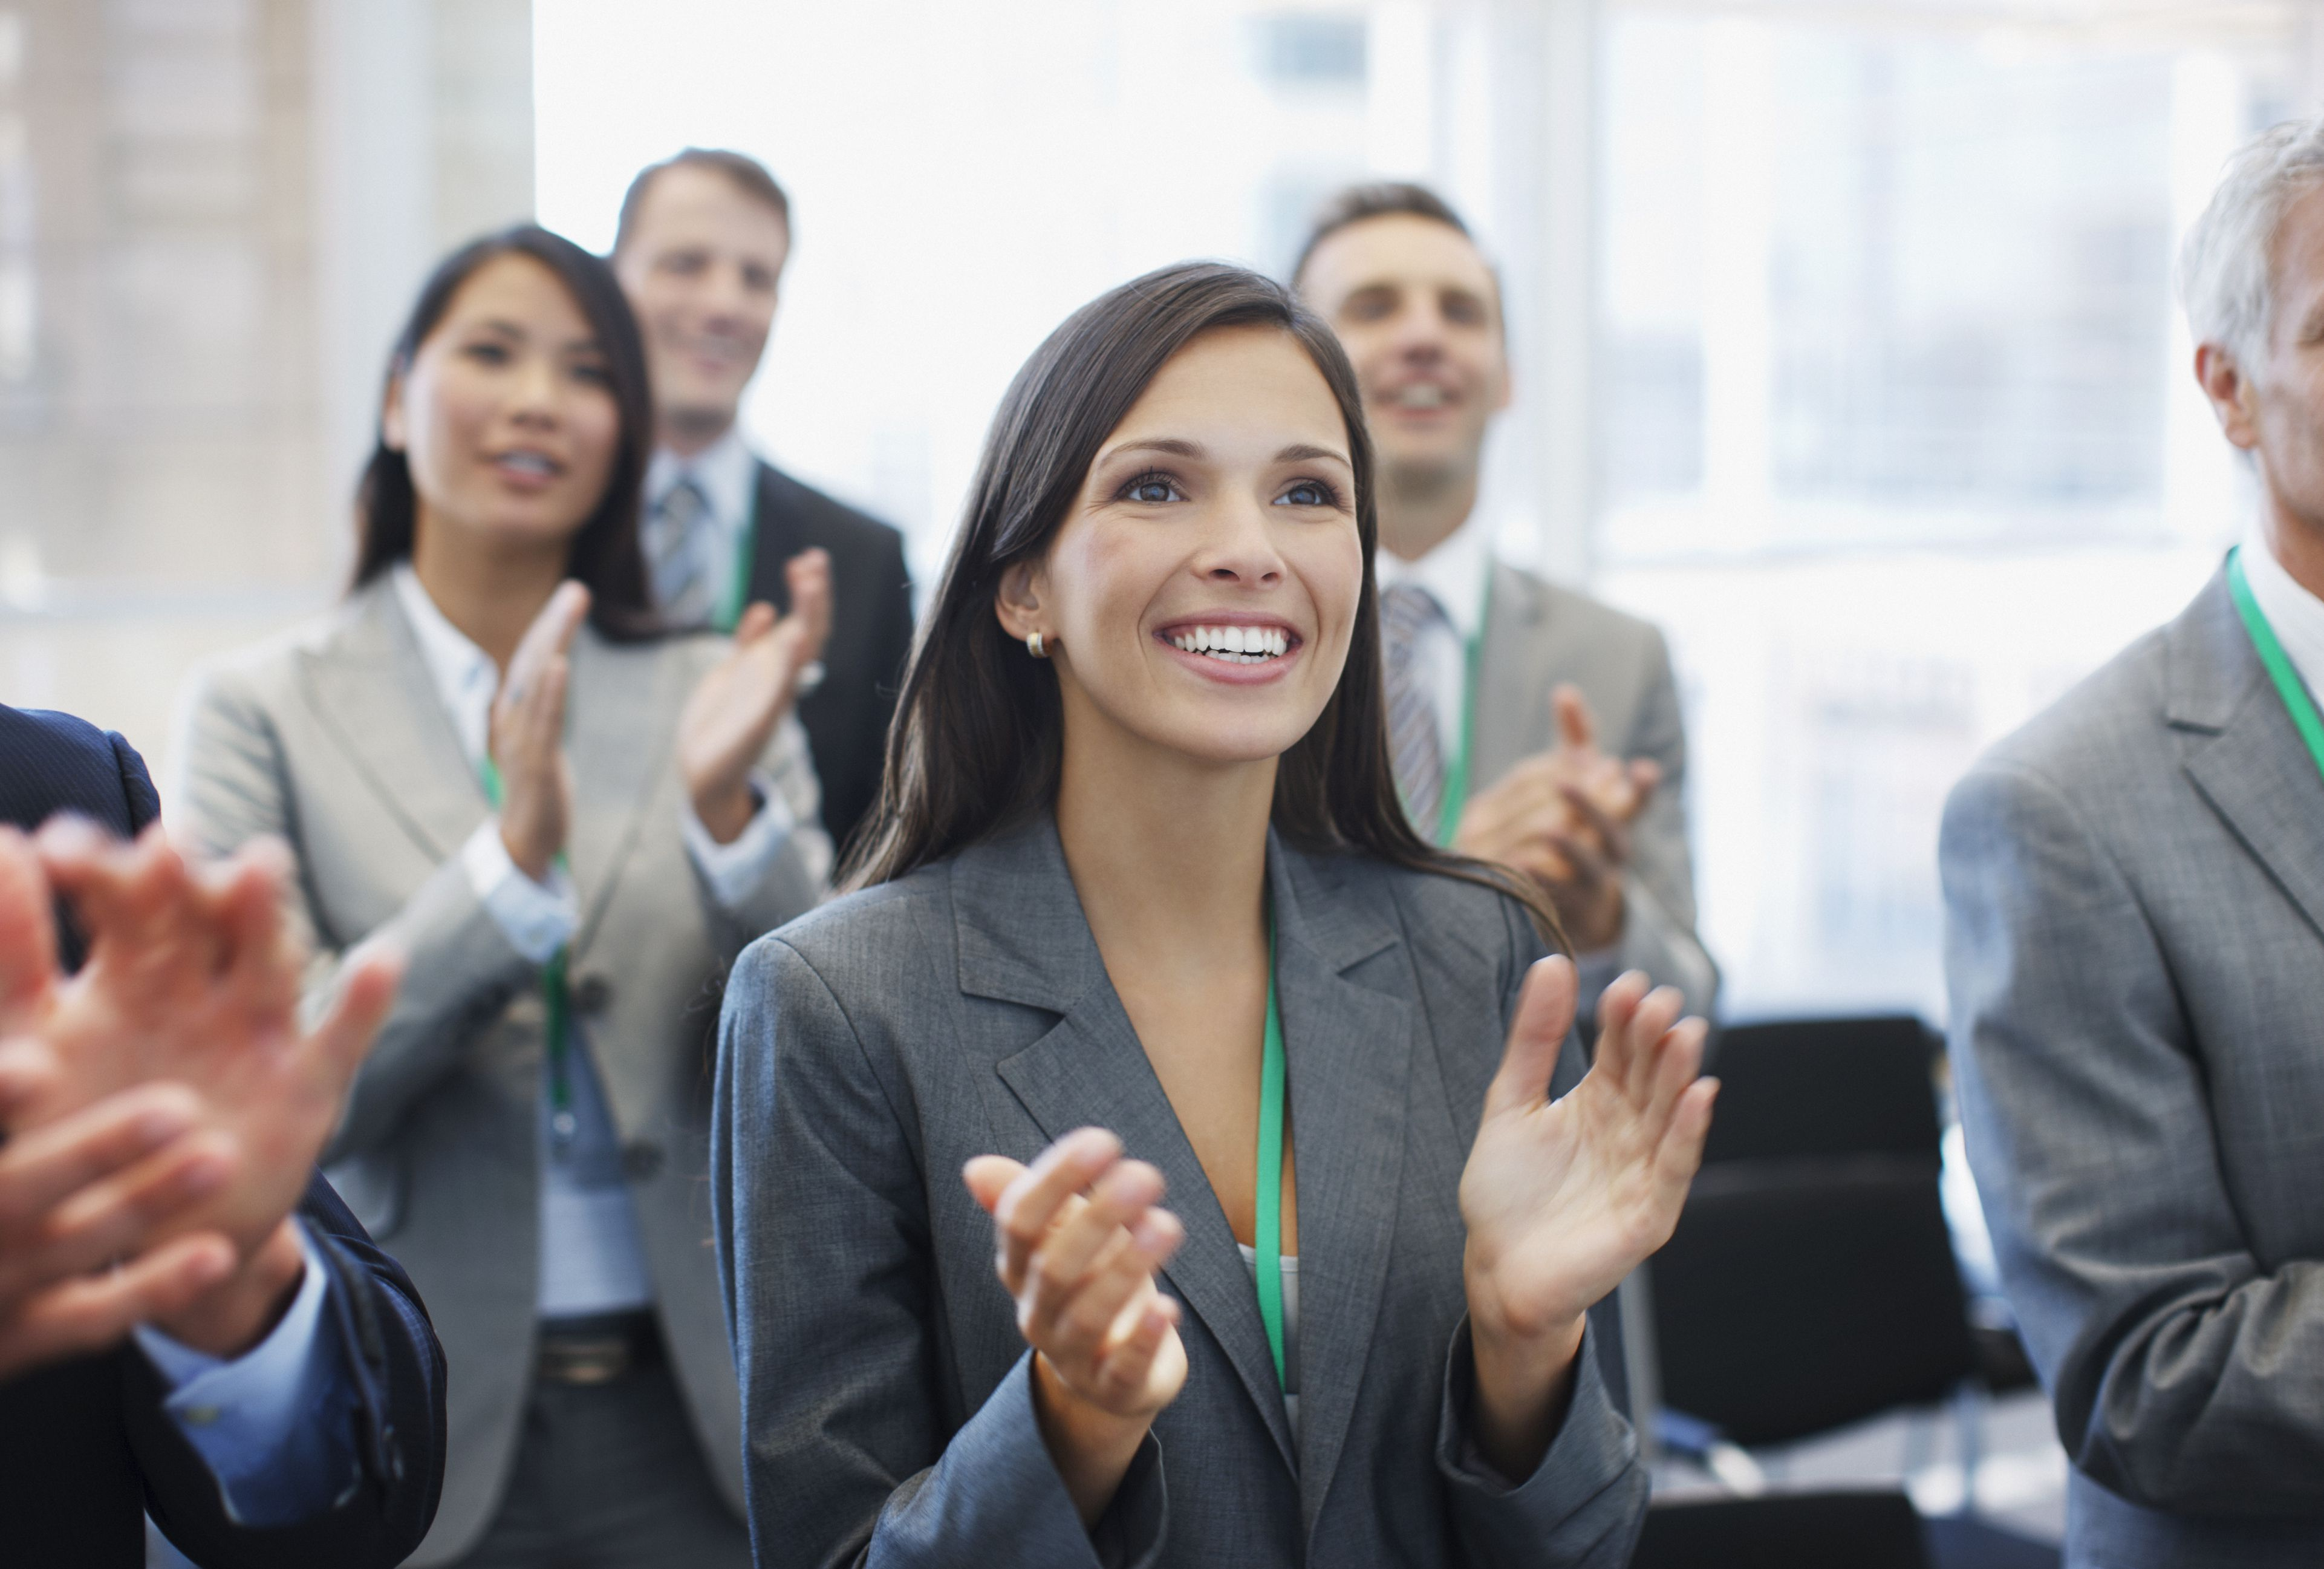 8 Ways To Gain The Respect Of Your Coworkers